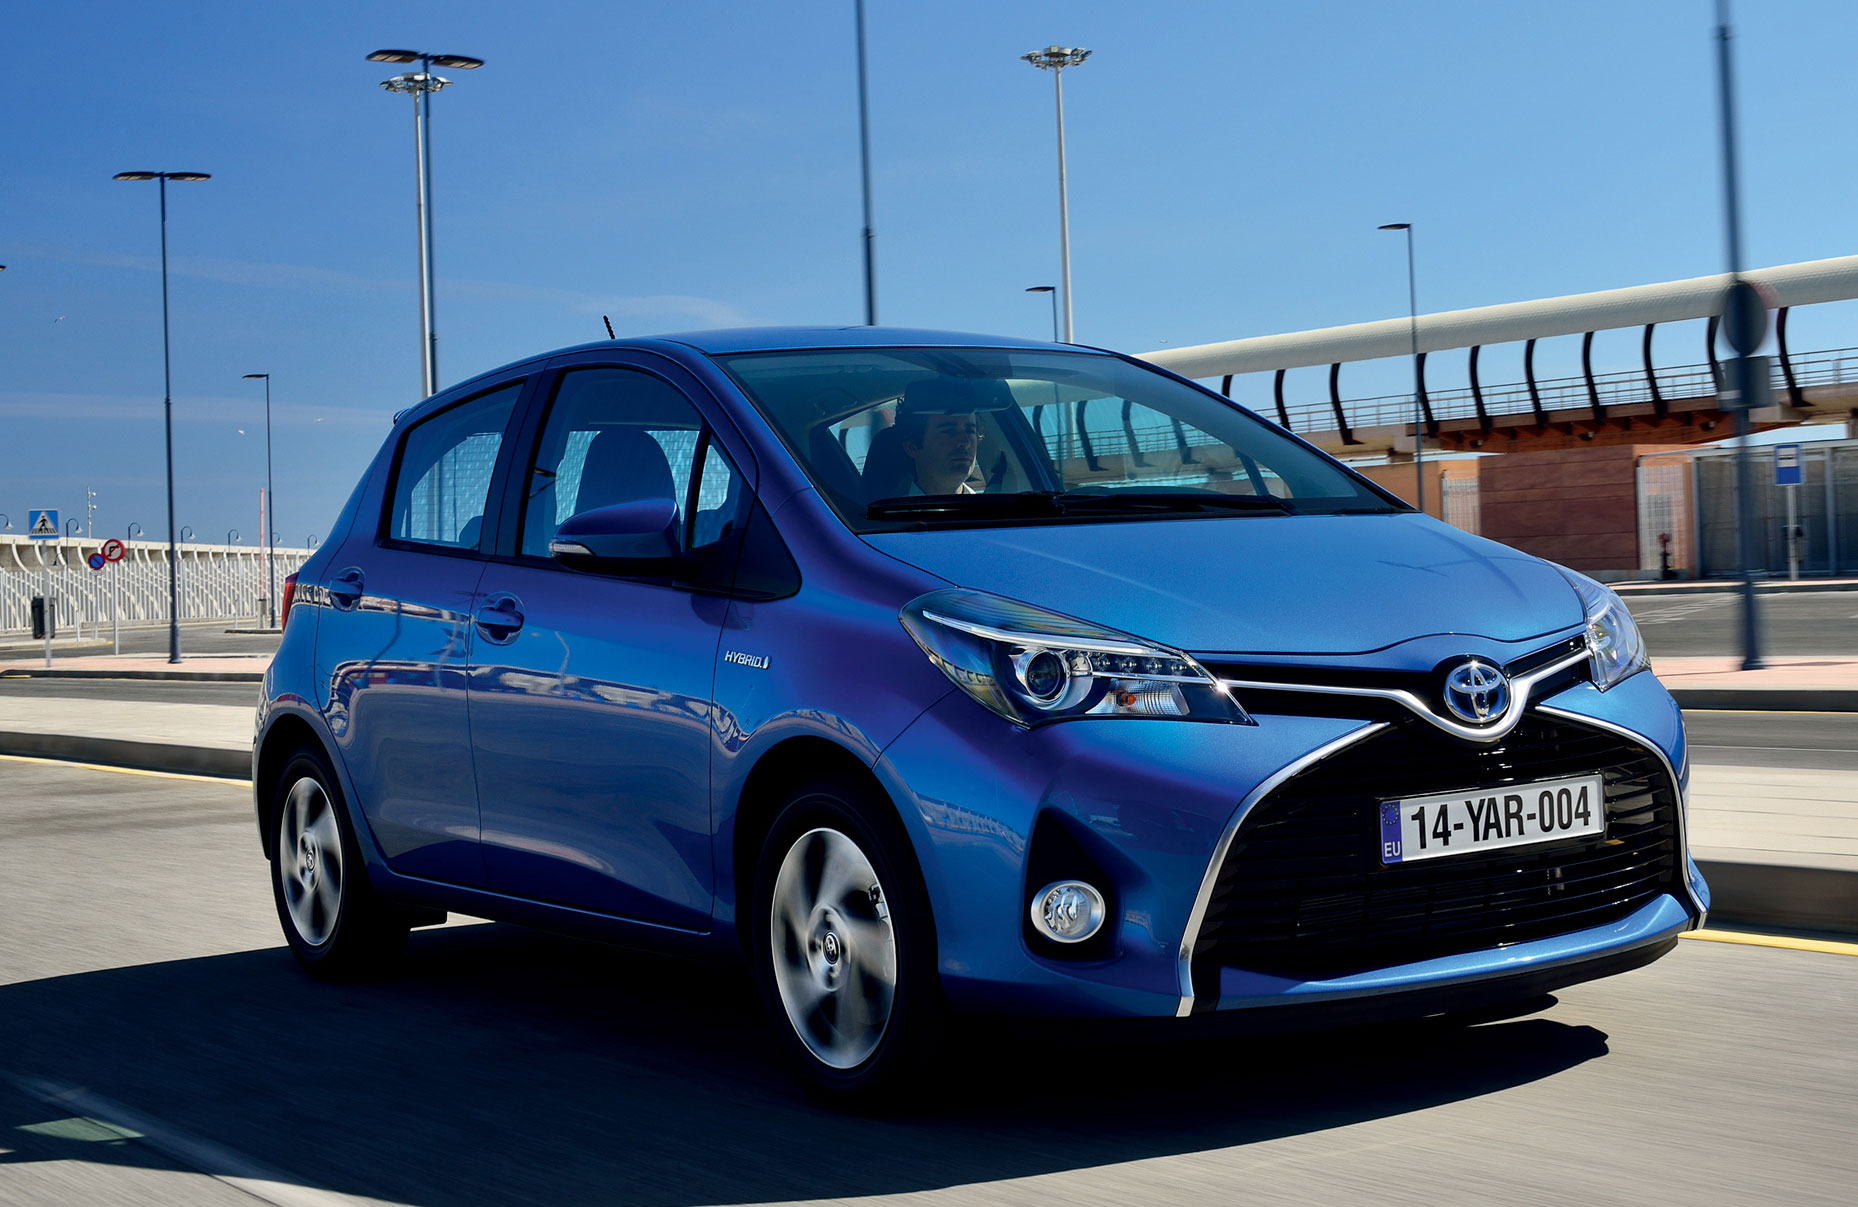 GALLERY: 2015 Toyota Yaris hatchback for Europe Image 250070